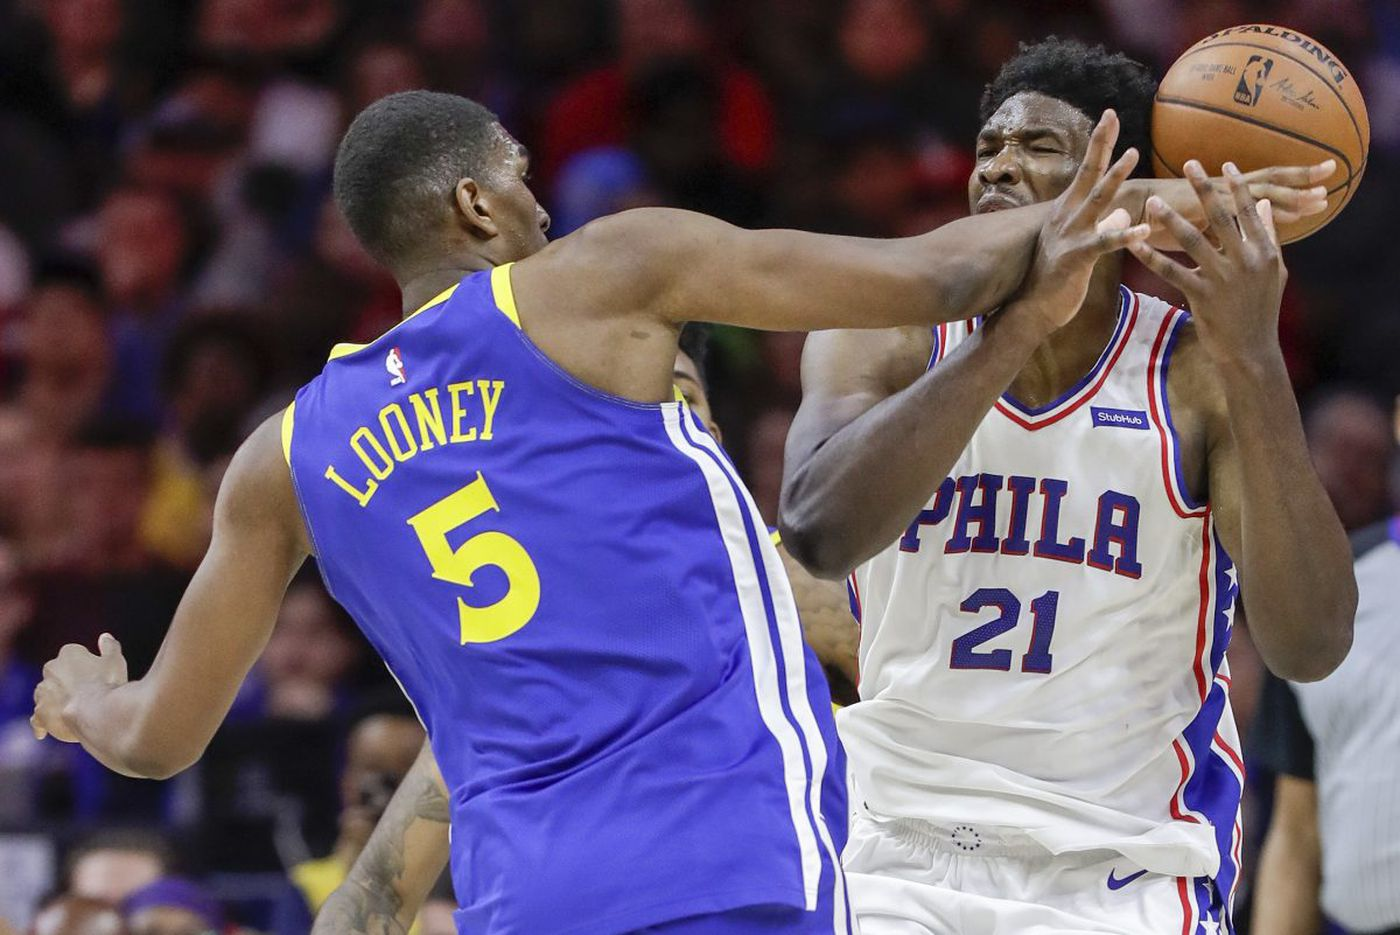 Sixers-Warriors: Sixers blow a 24-point lead, five quick thoughts from a 124-116 loss